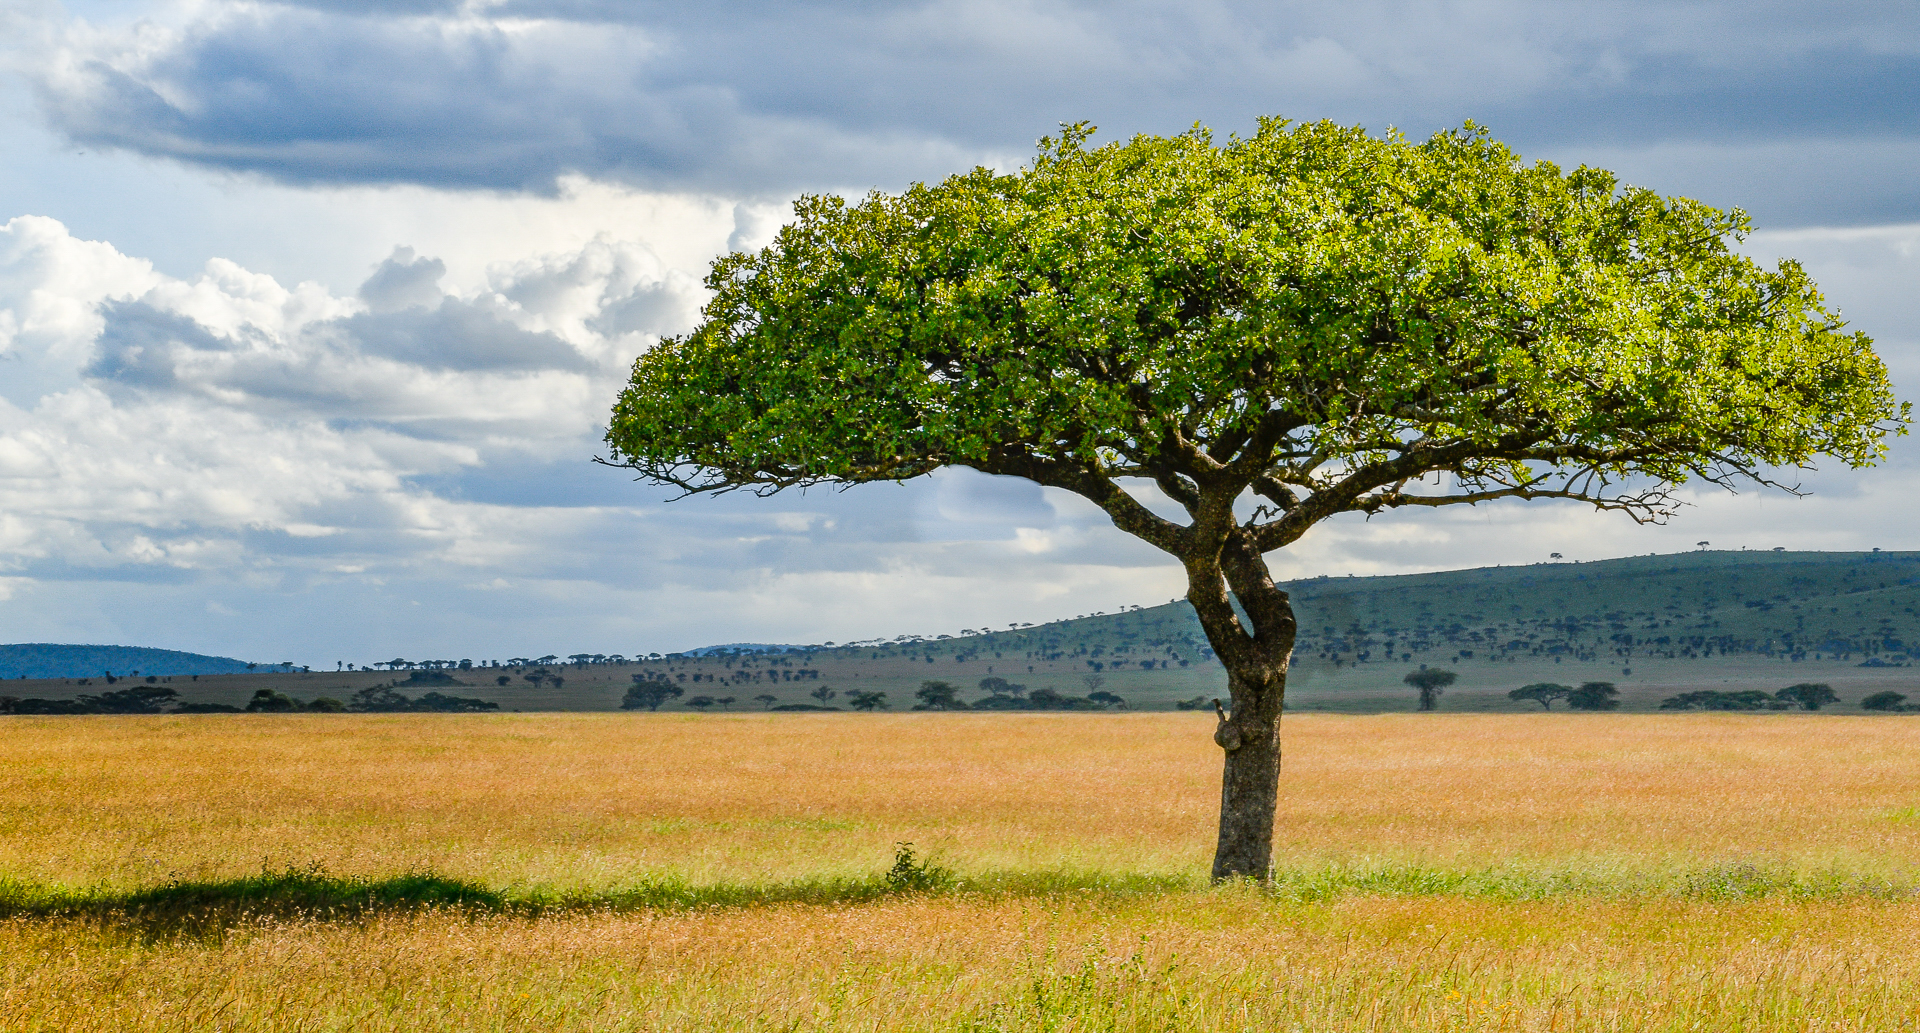 Acacia Tree in Serengeti